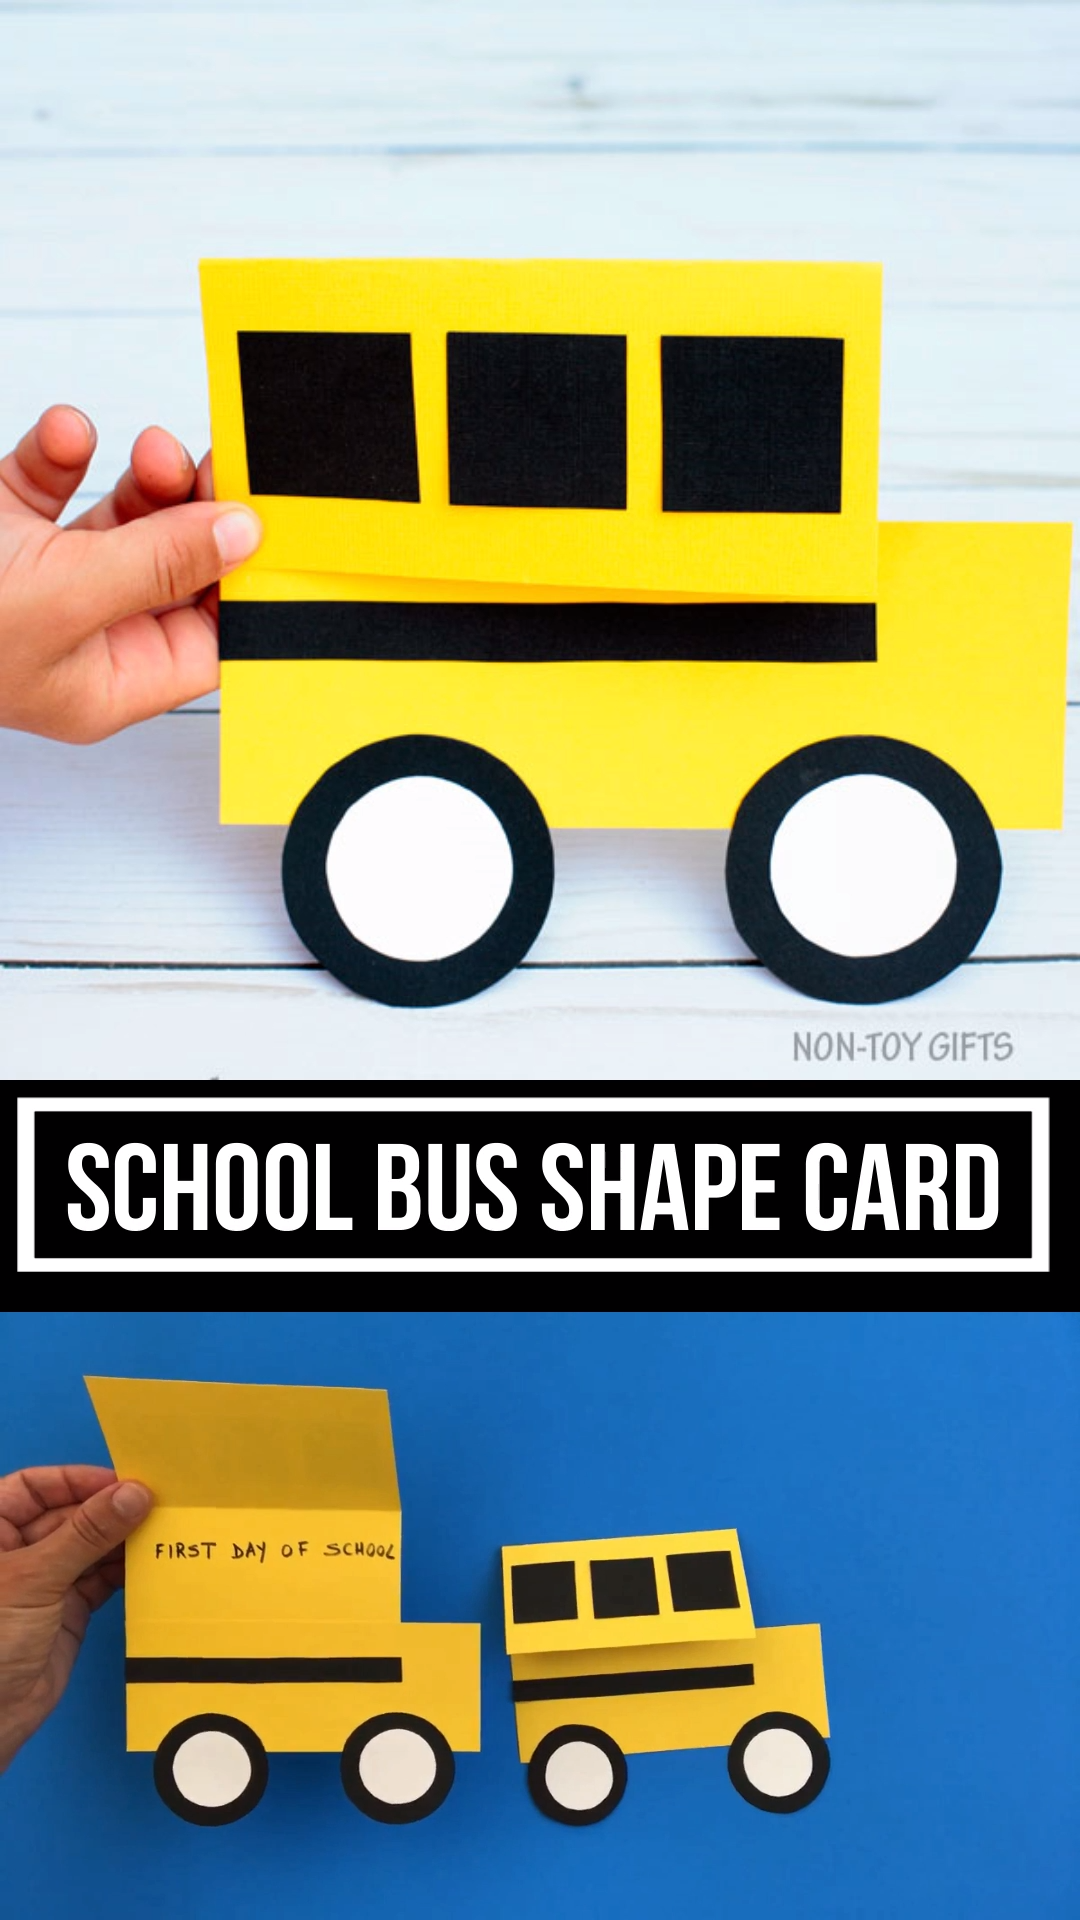 Watch this: School Bus Shape Card And Craft For Kids To Make On The First  Day Of School.